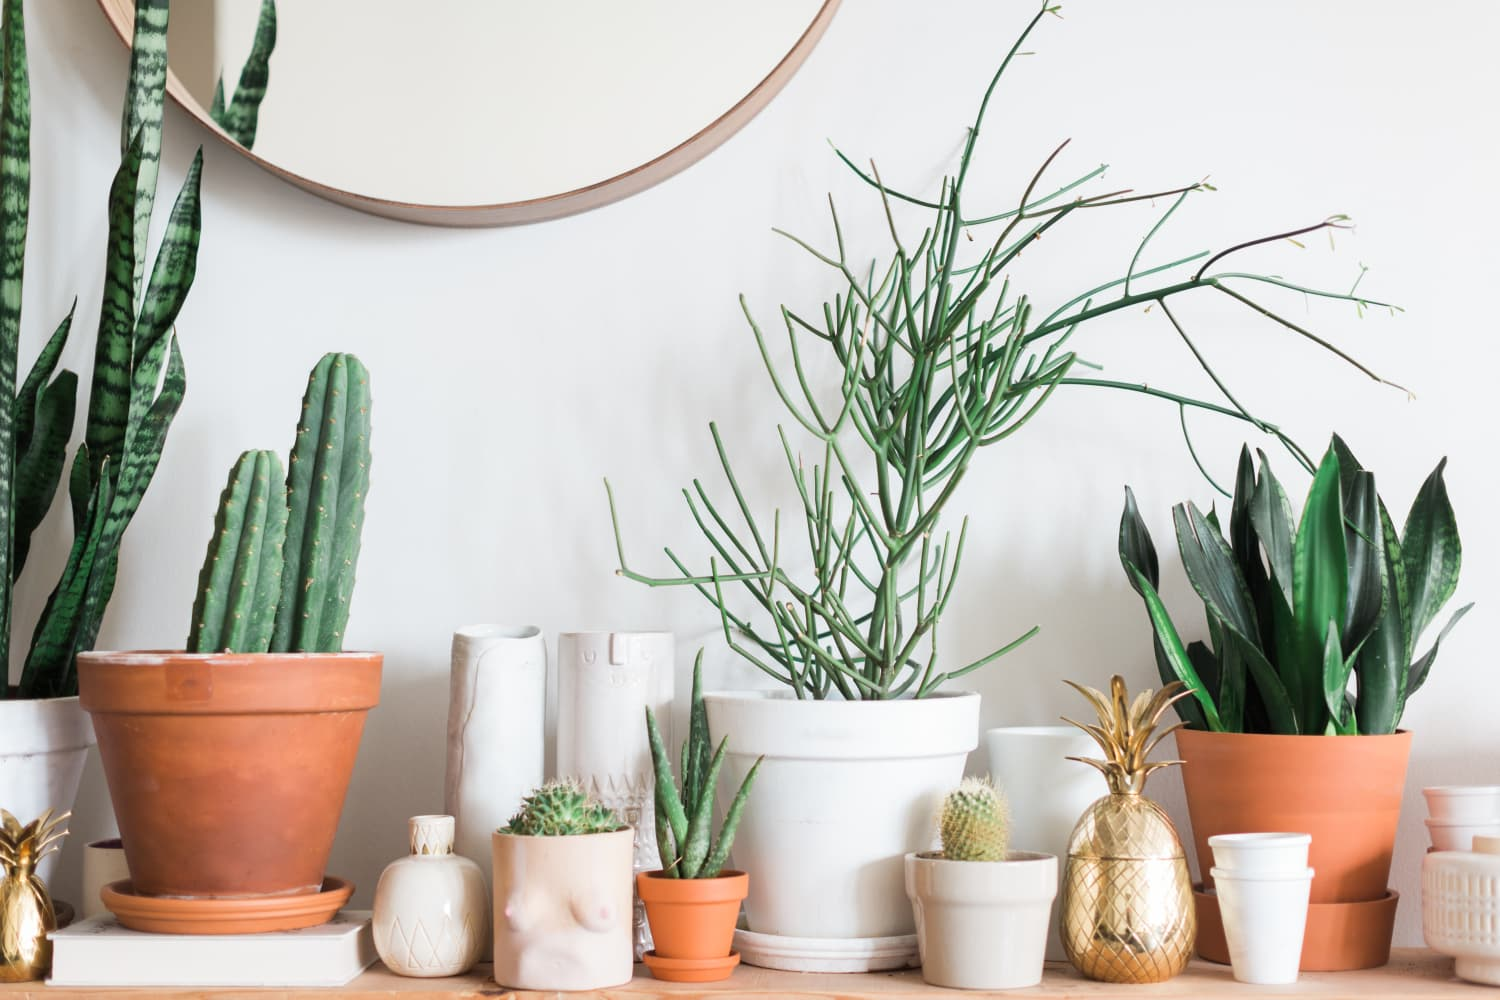 6 Plants You Barely Need to Water